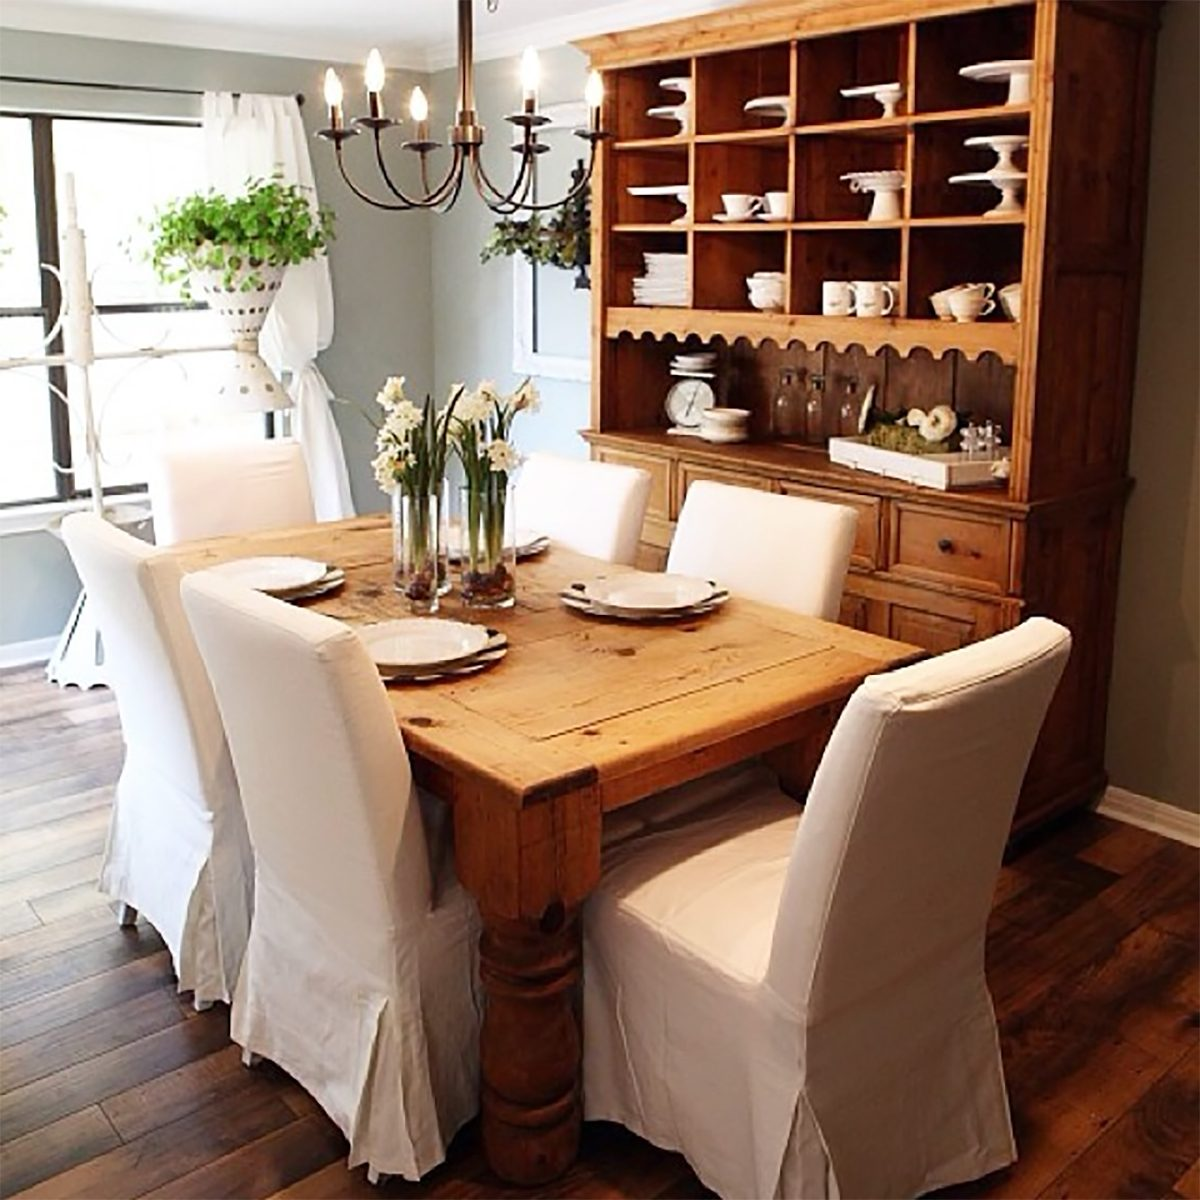 farmhouse style dining room with chairs, chandelier and storage